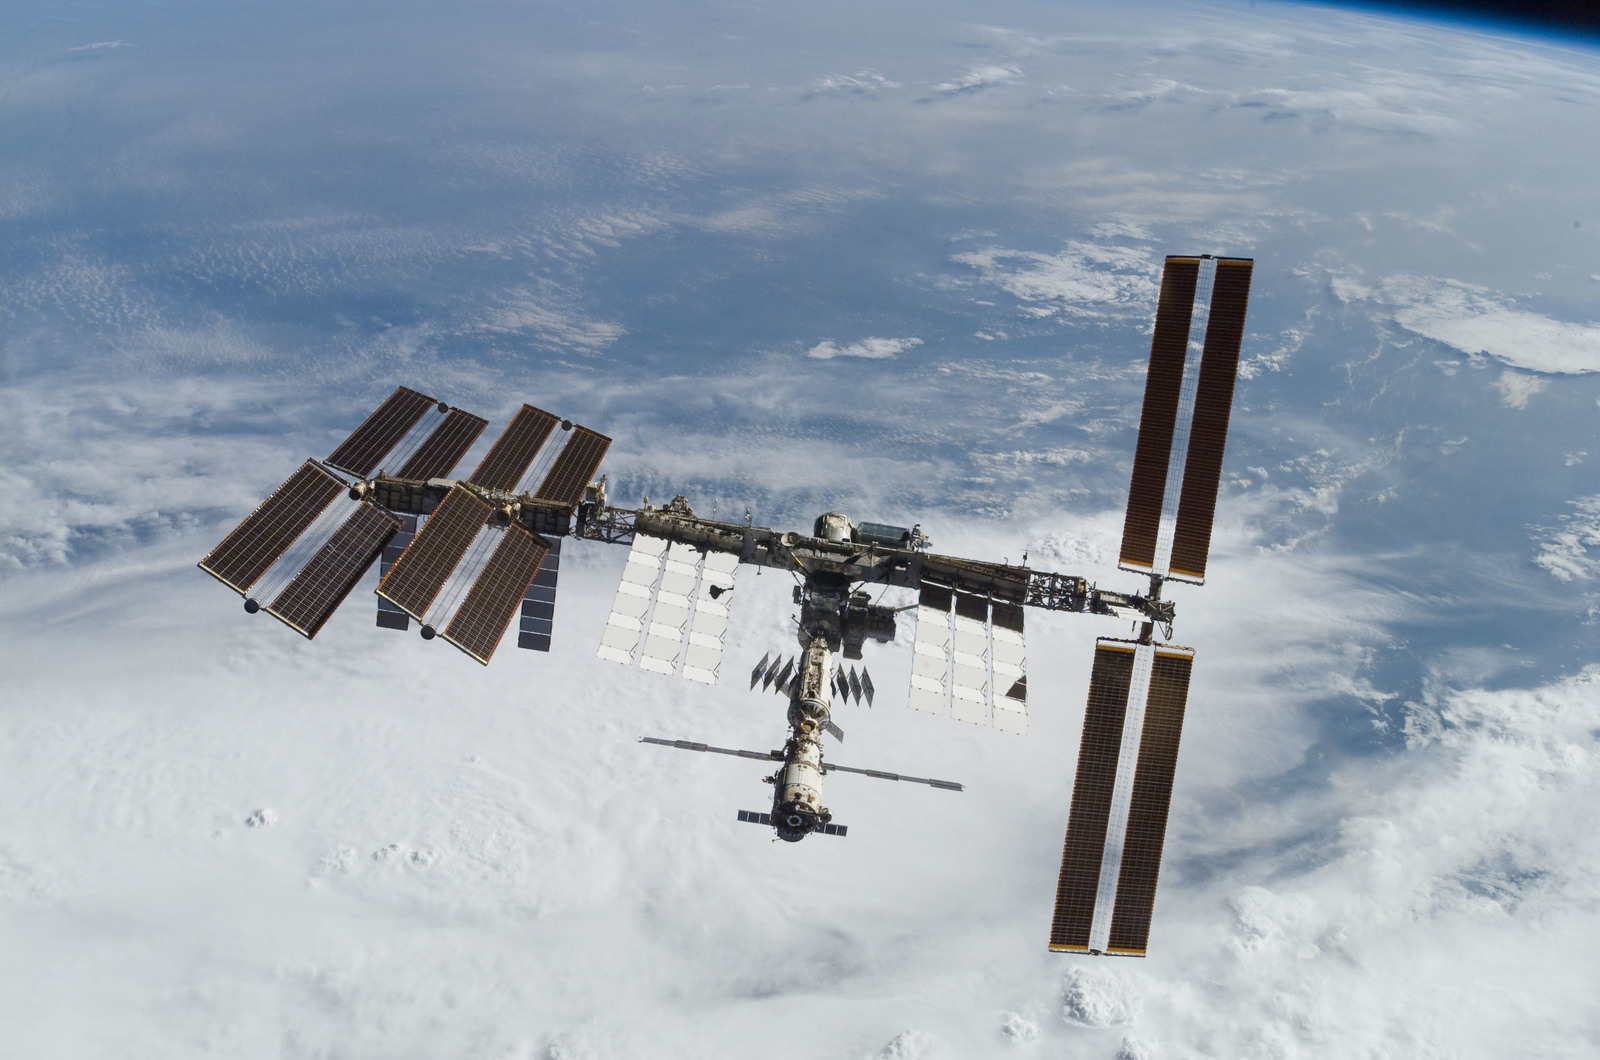 S122E010937 - STS-122 - View of ISS after STS-122 Undocking